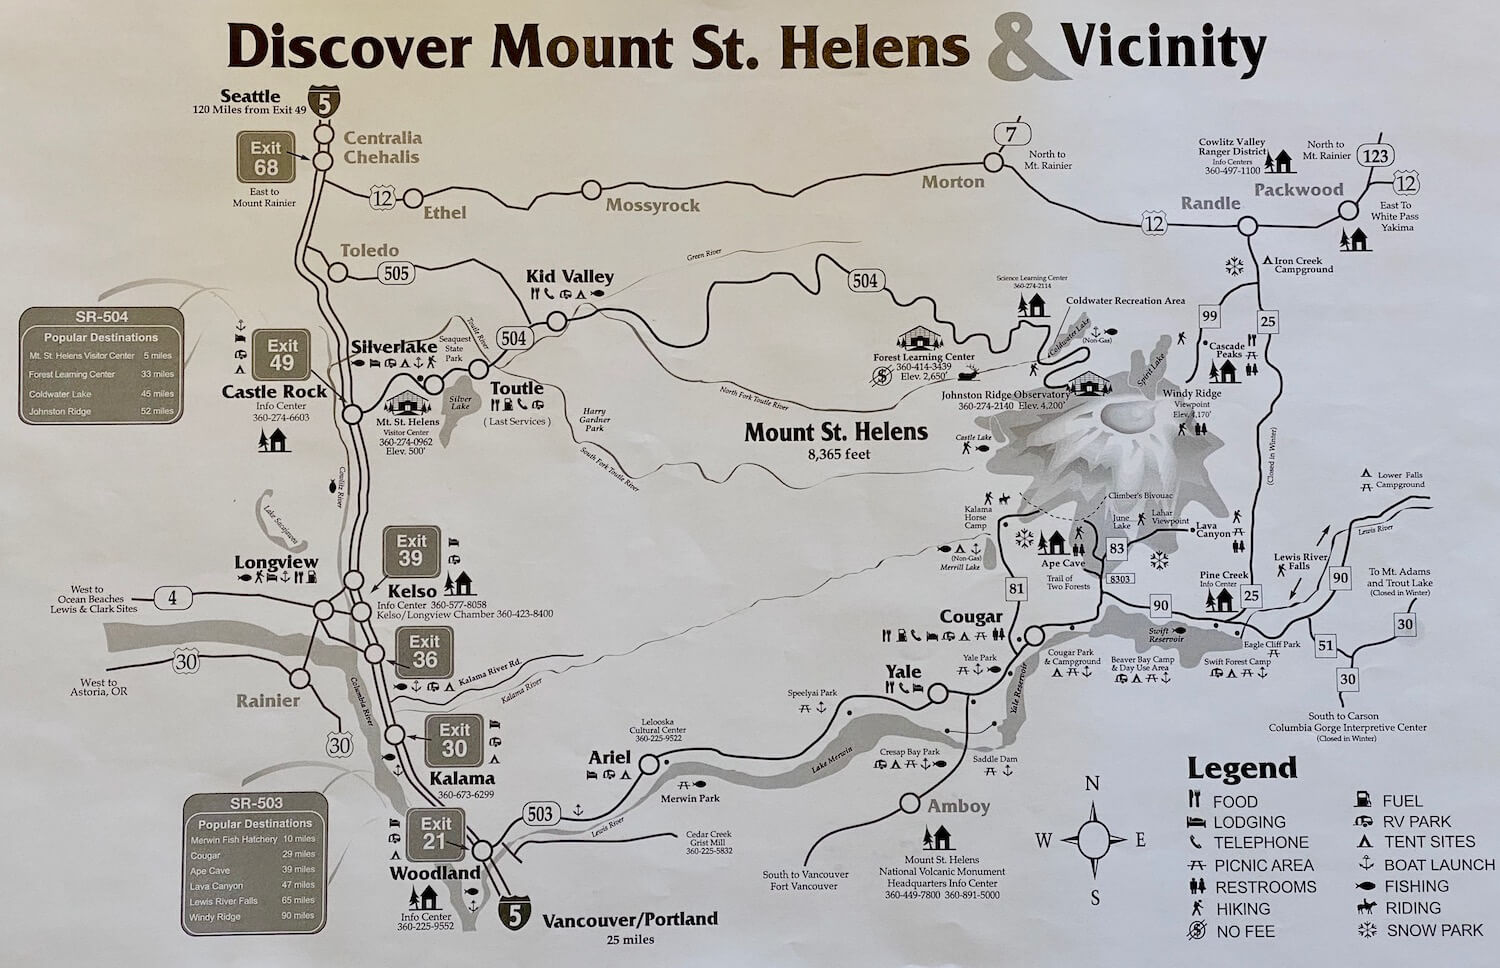 A forestry service map featuring the Mount St. Helens area, including roads and recreation areas, as well as reference points onward to both Seattle and Portland.